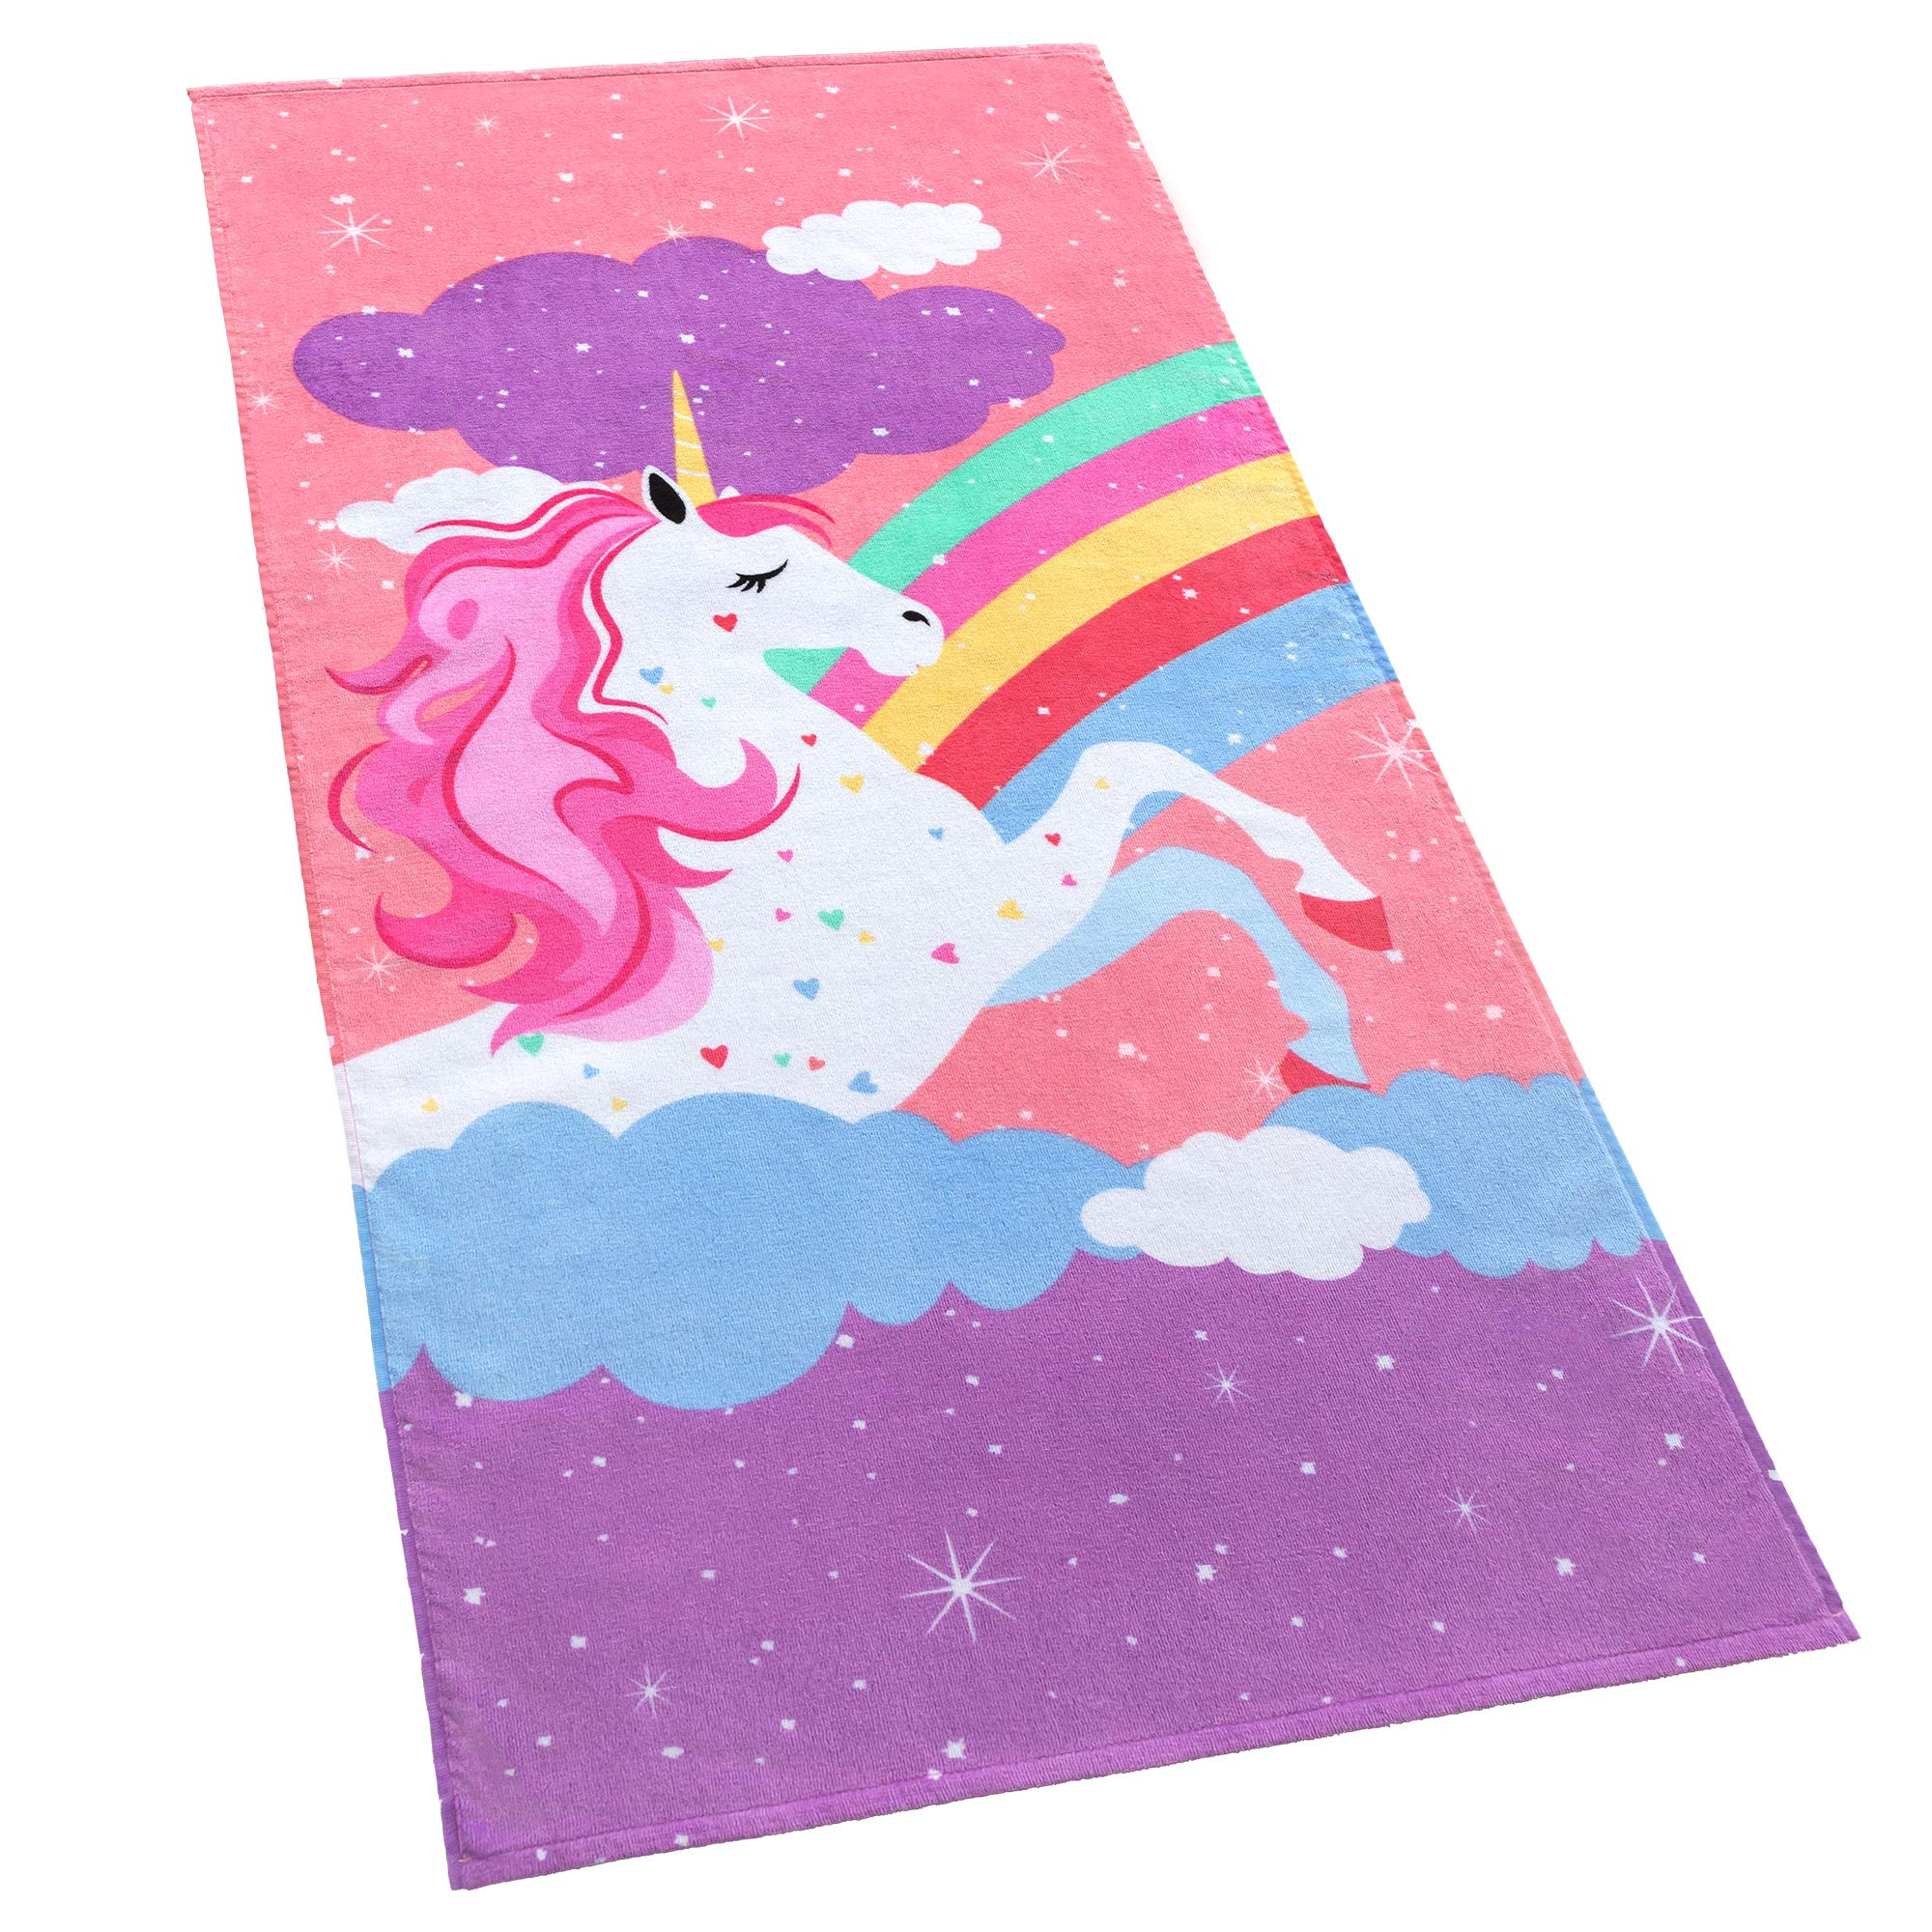 Softerry Rainbow Unicorn Velour Beach Towel for Kids 28in x 55in 100% Cotton by Softerry